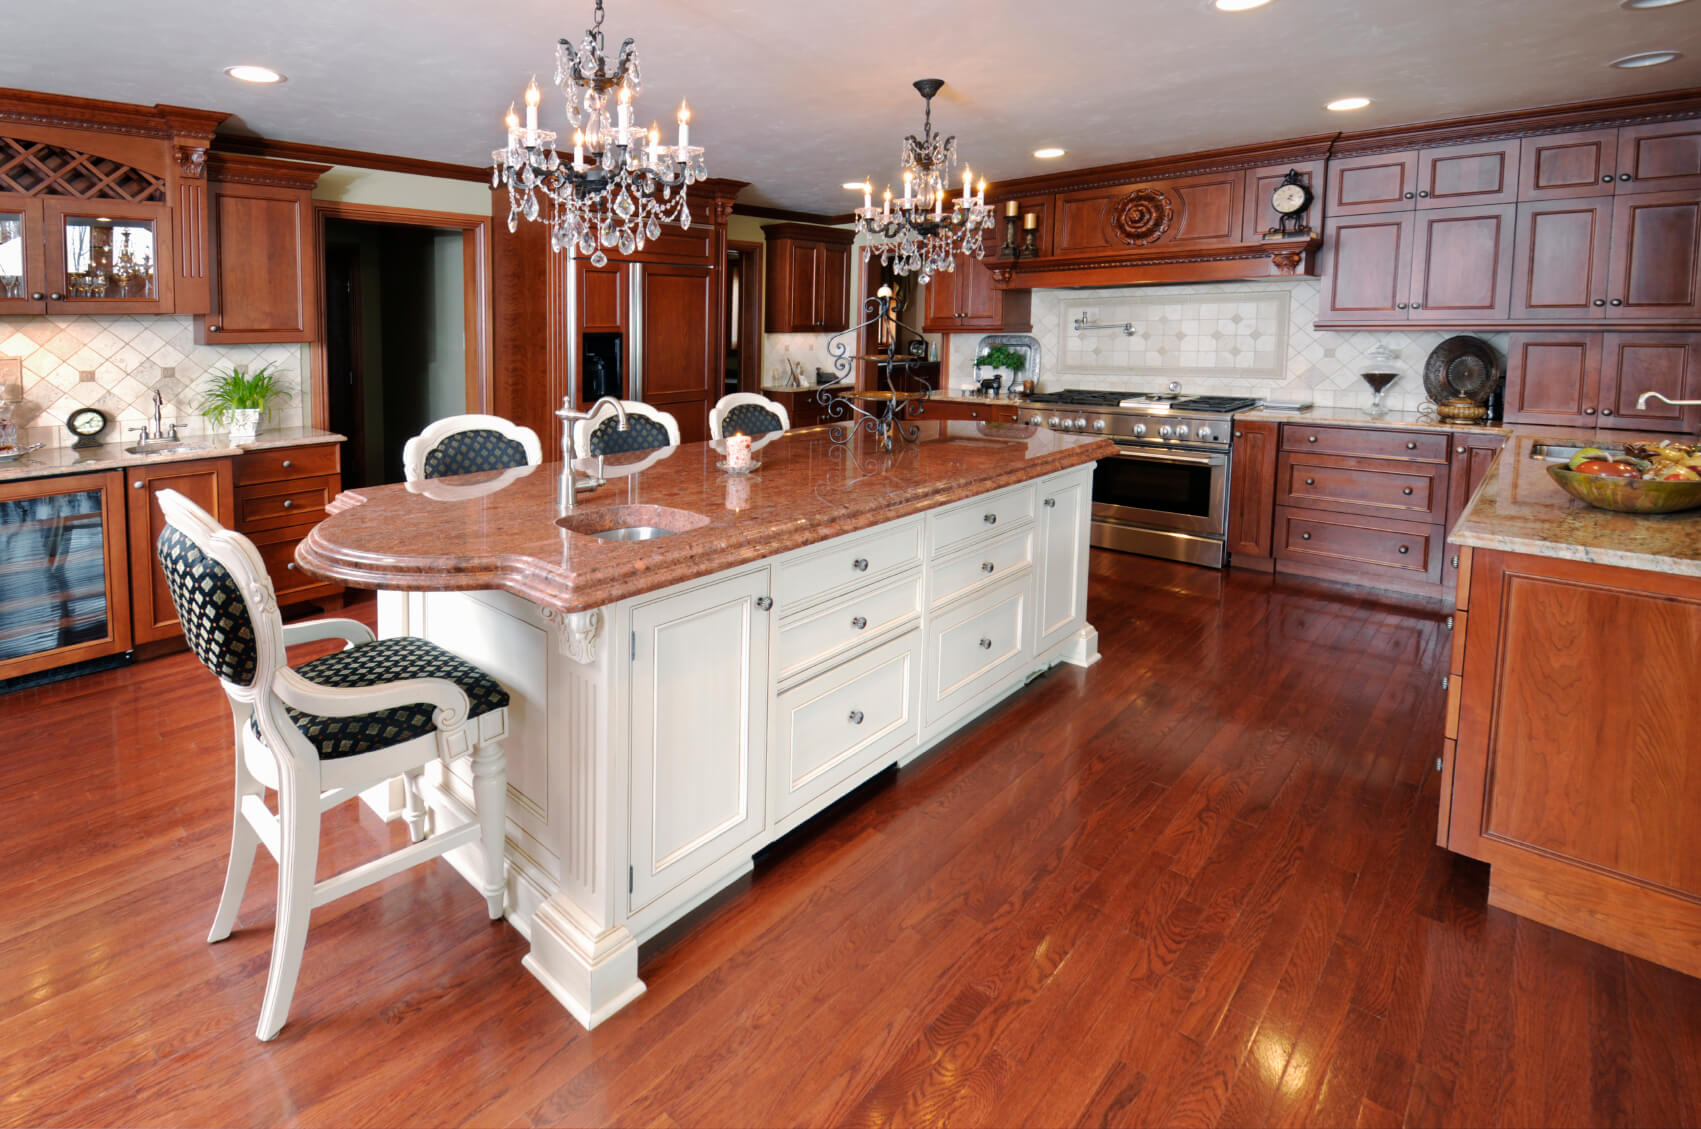 Custom Kitchen Islands With Breakfast Bar 84 Custom Luxury Kitchen Island Ideas & Designs Pictures